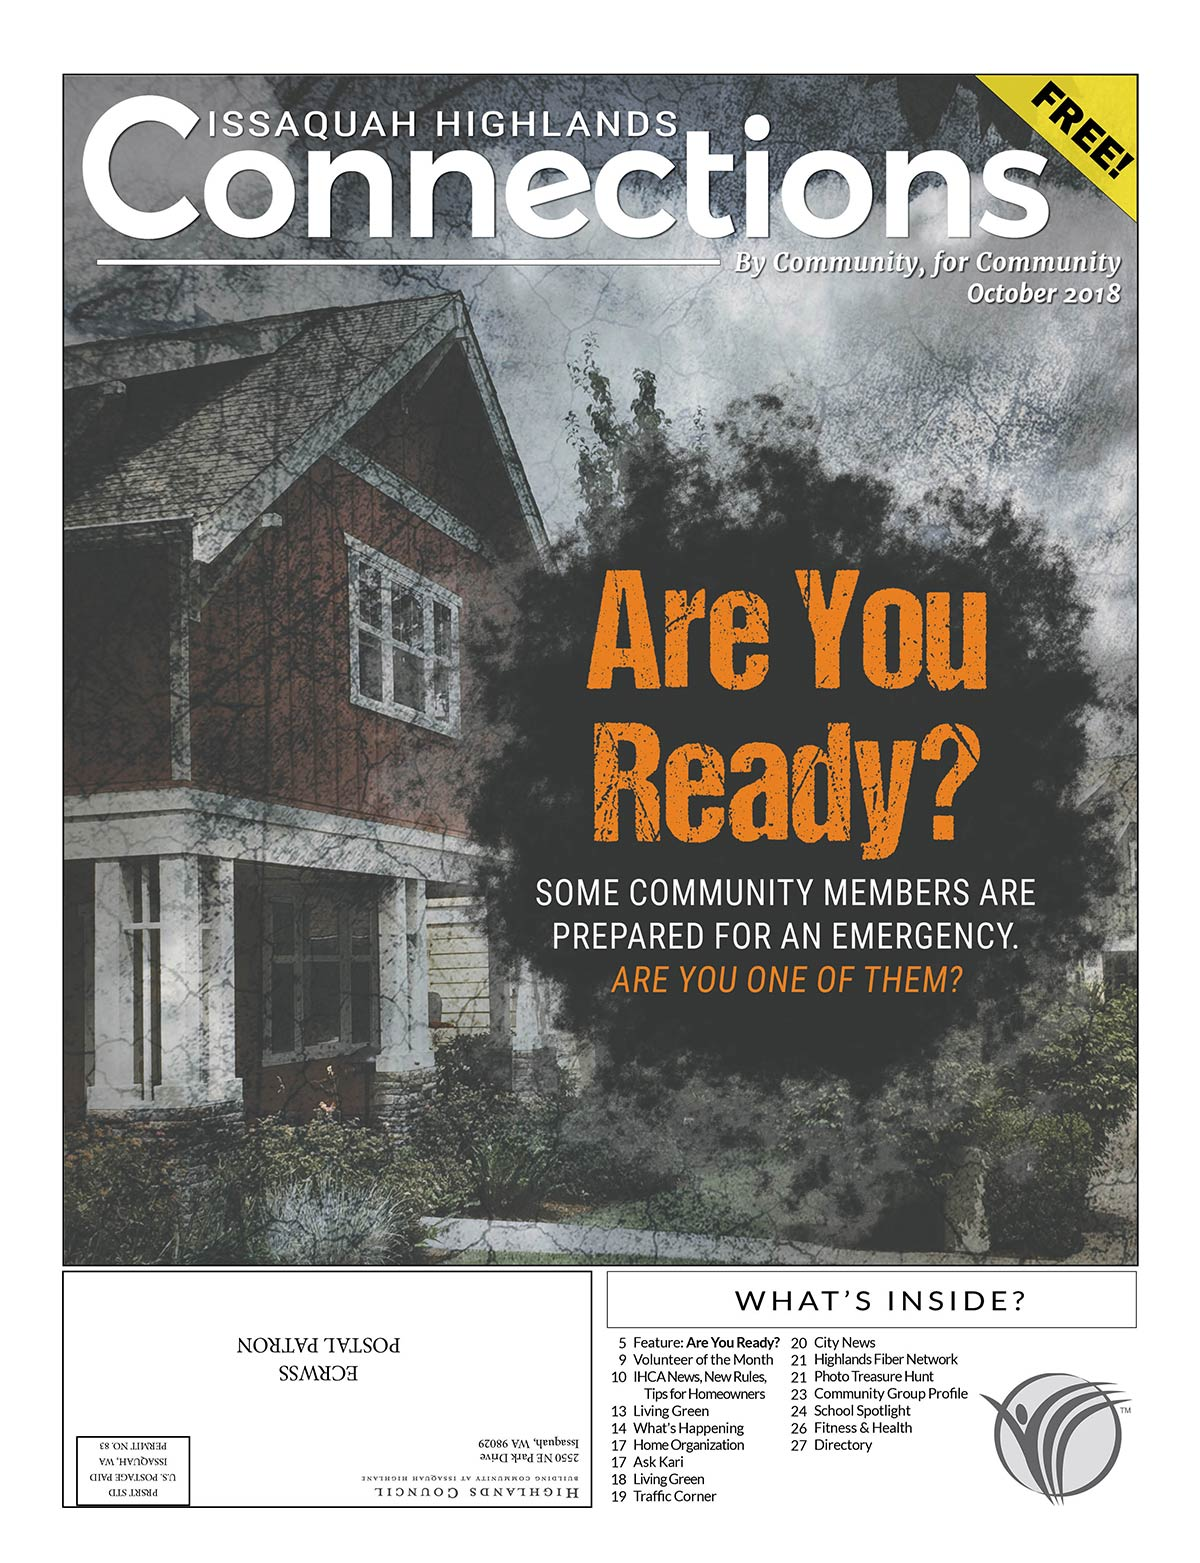 Issaquah Highlands Connections October